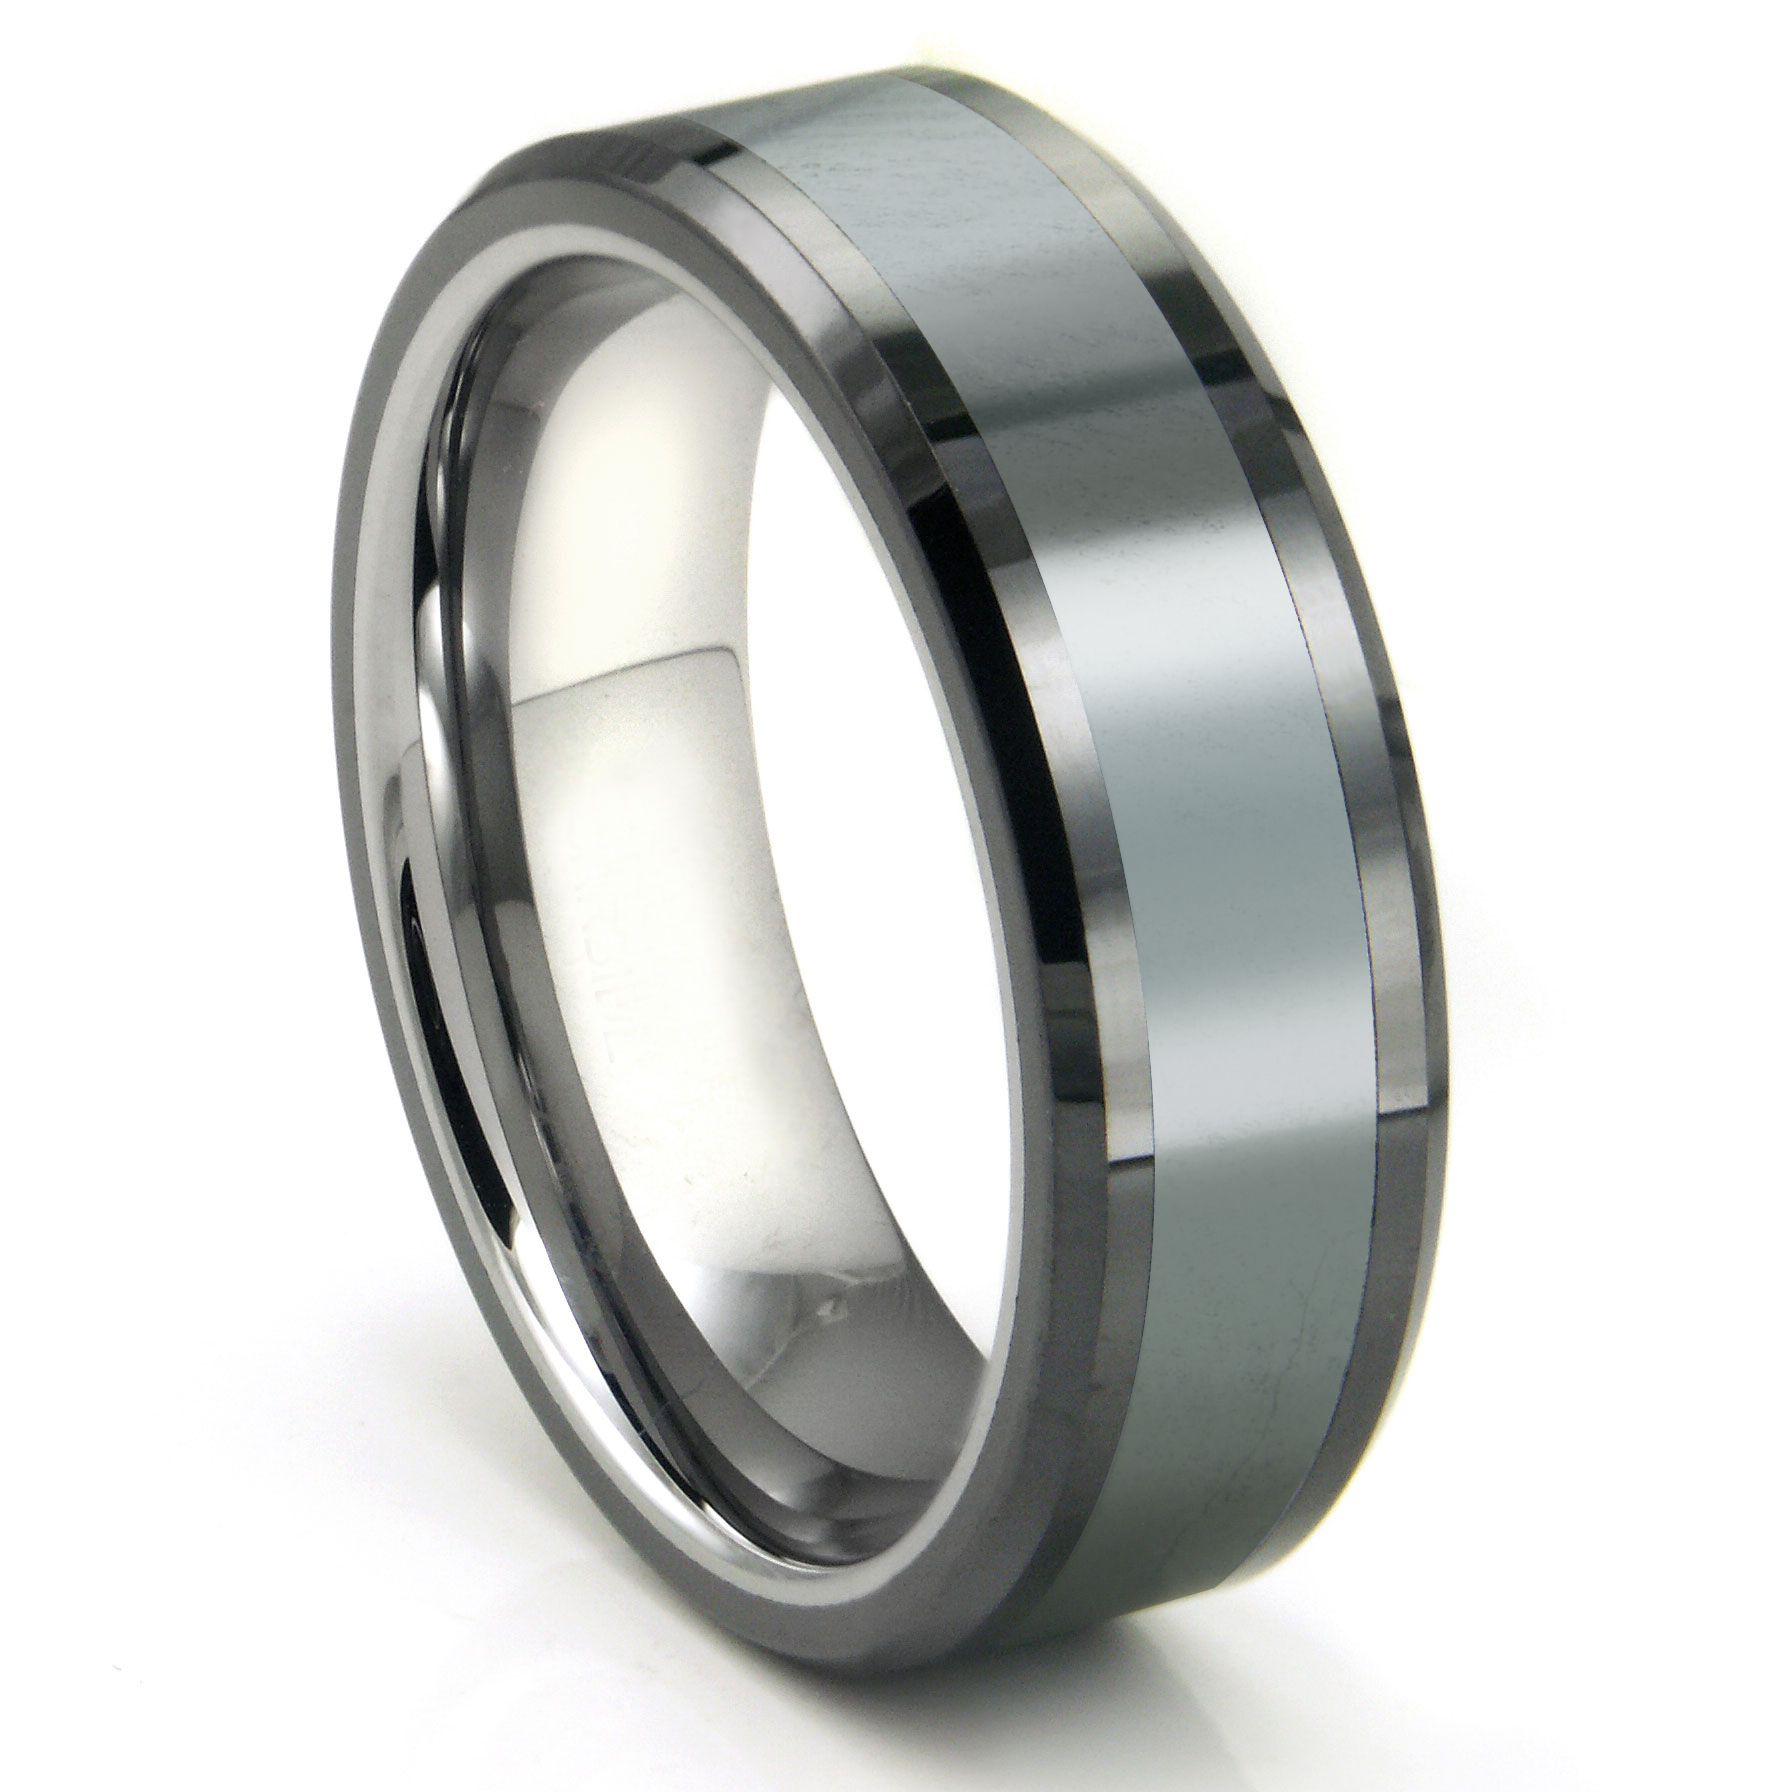 Tungsten Carbide Grey Meteorite Inlay Wedding Band Ring P mens titanium wedding bands Home Men s Tungsten Carbide Rings Loading zoom